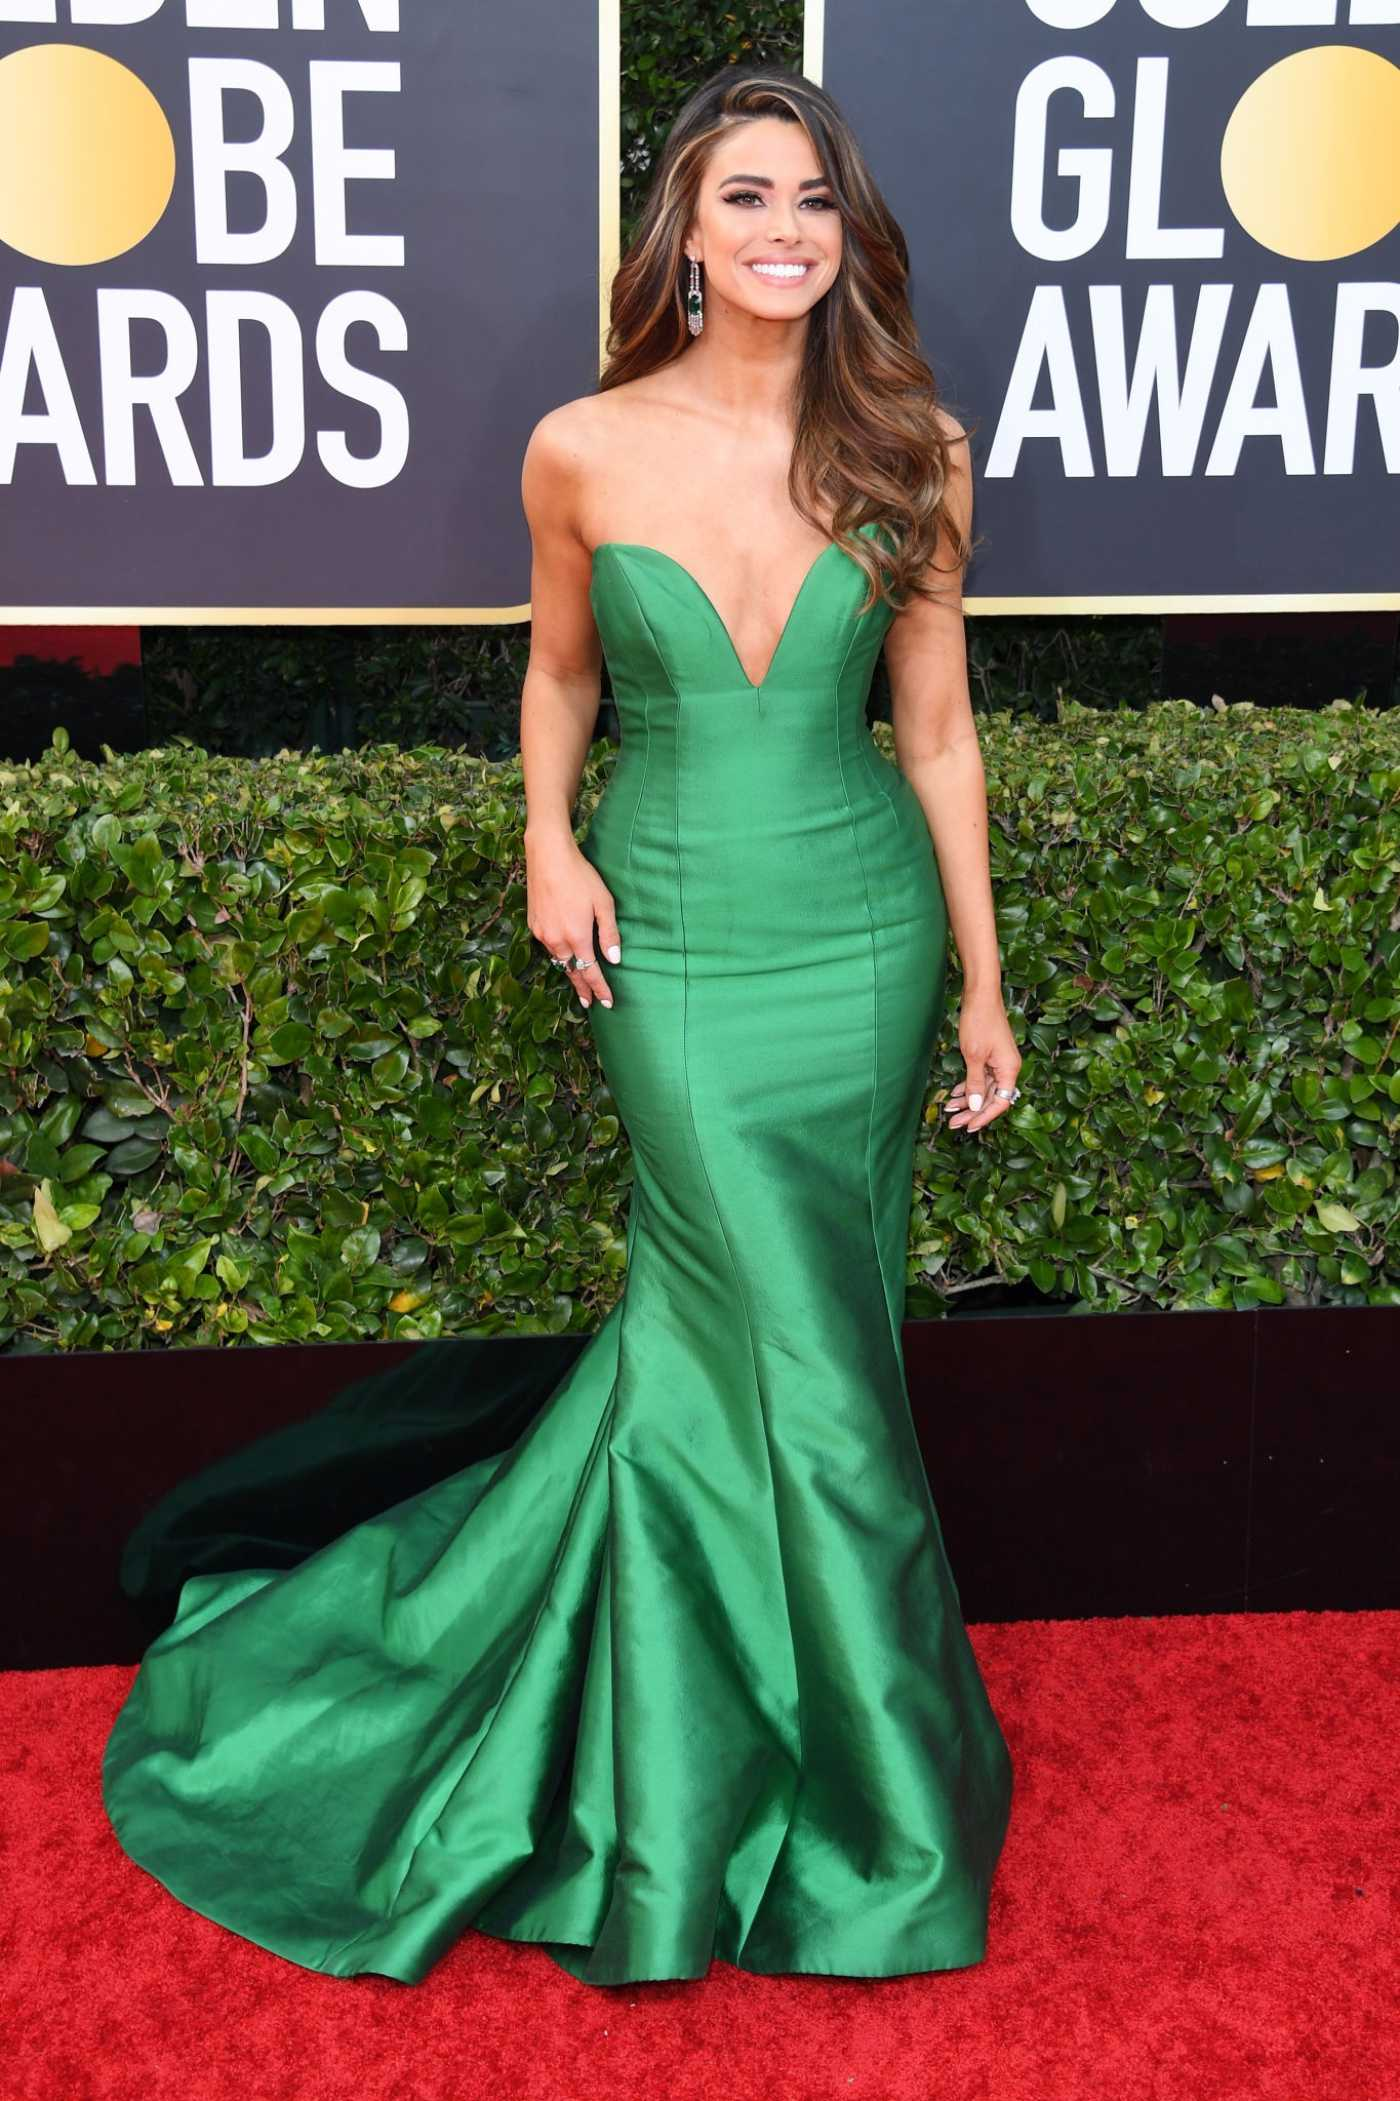 Jennifer Lahmers Attends the 77th Annual Golden Globe Awards at the Beverly Hilton Hotel in Beverly Hills 01/05/2020